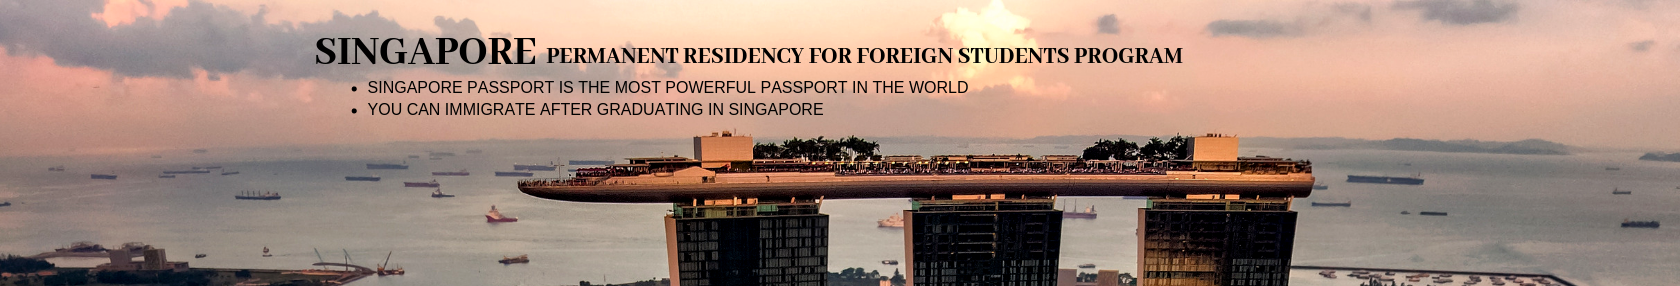 Singapore, Permanent Residency for Foreign Students